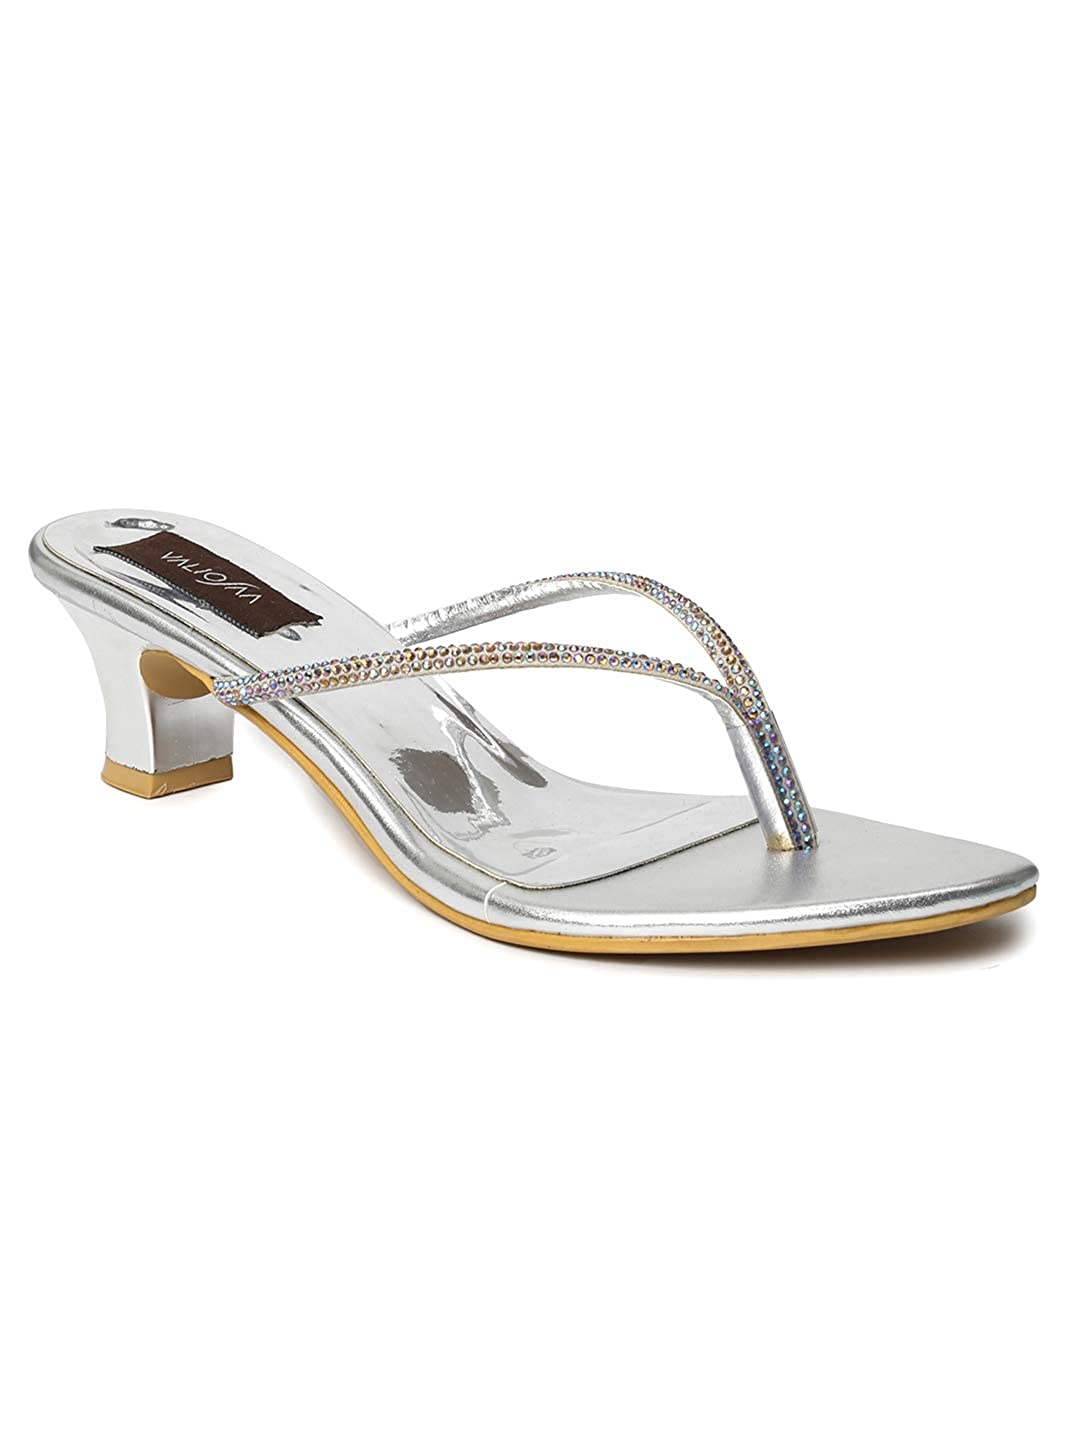 For 110/-(72% Off) Valiosaa Women's footwear min 80% off starts from Rs.347 at Amazon India